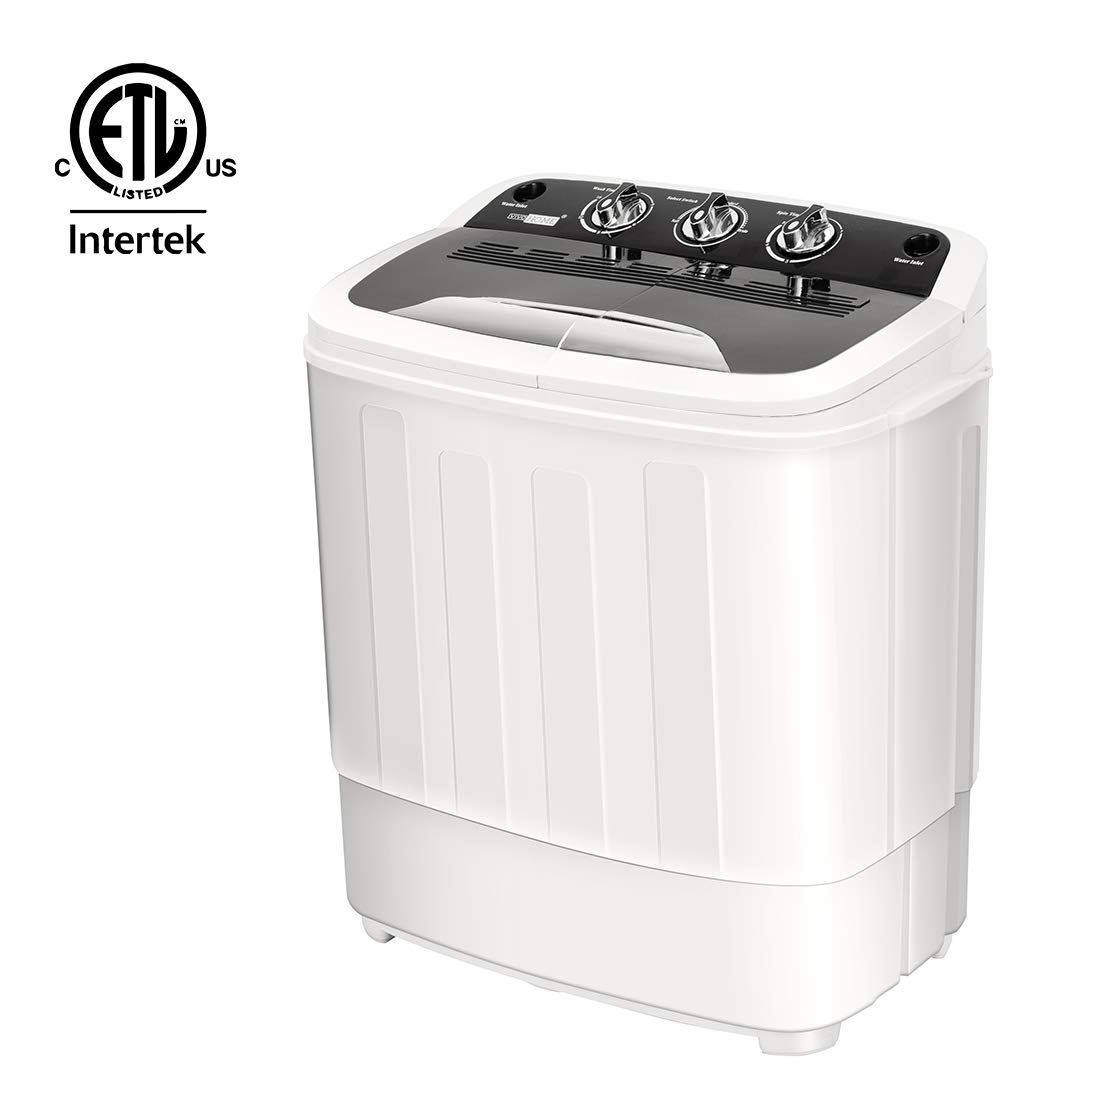 VIVOHOME Electric Portable 2 in 1 Twin Tub Mini Laundry Washer and Dryer Combo Washing Machine with Drain Hose for Apartments 13lbs Capacity ETL Listed